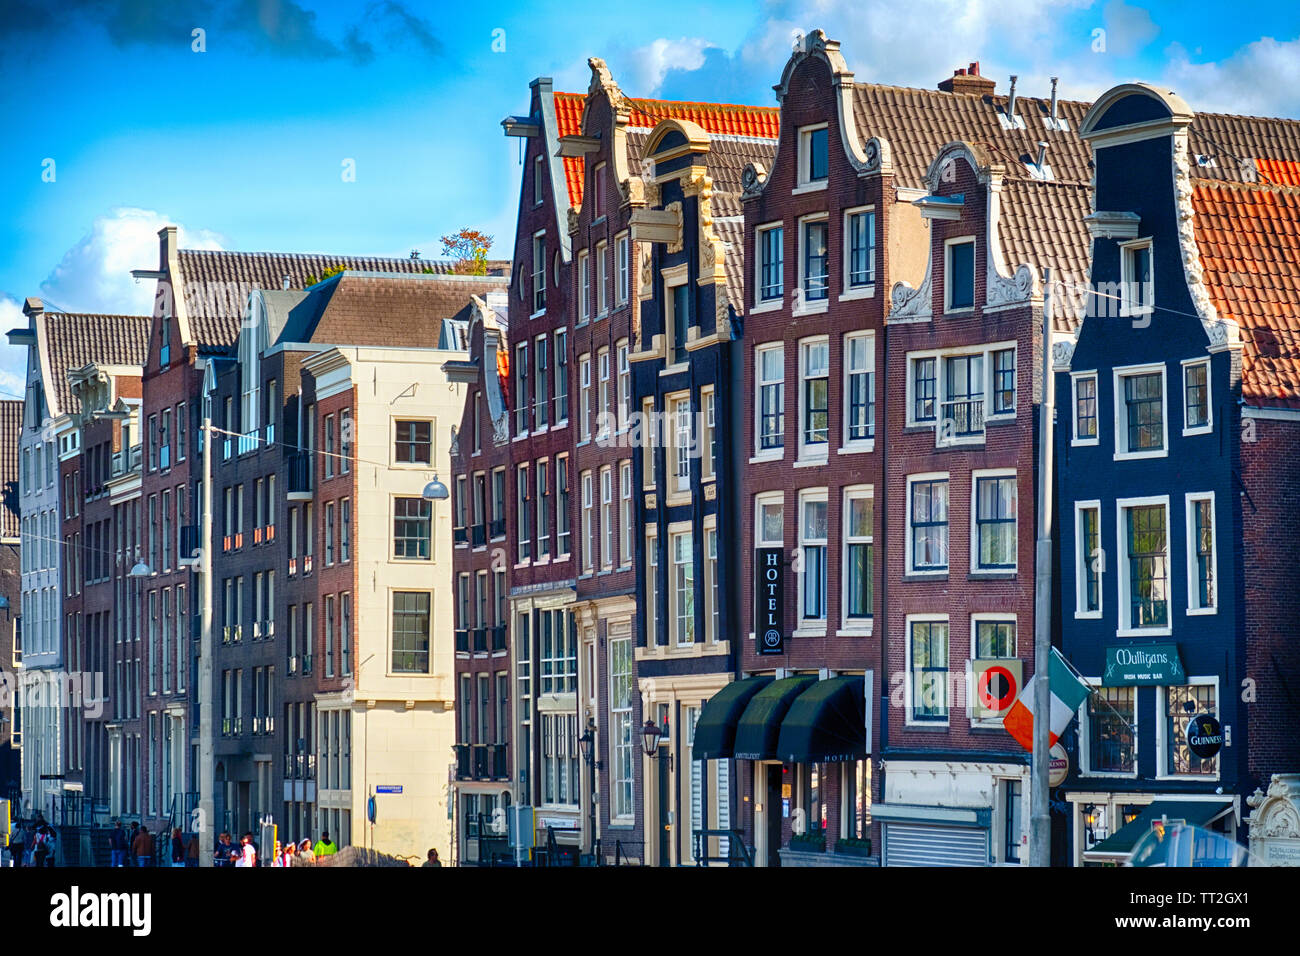 Row House Facades in Central Amsterdam., Netherlands Stock Photo